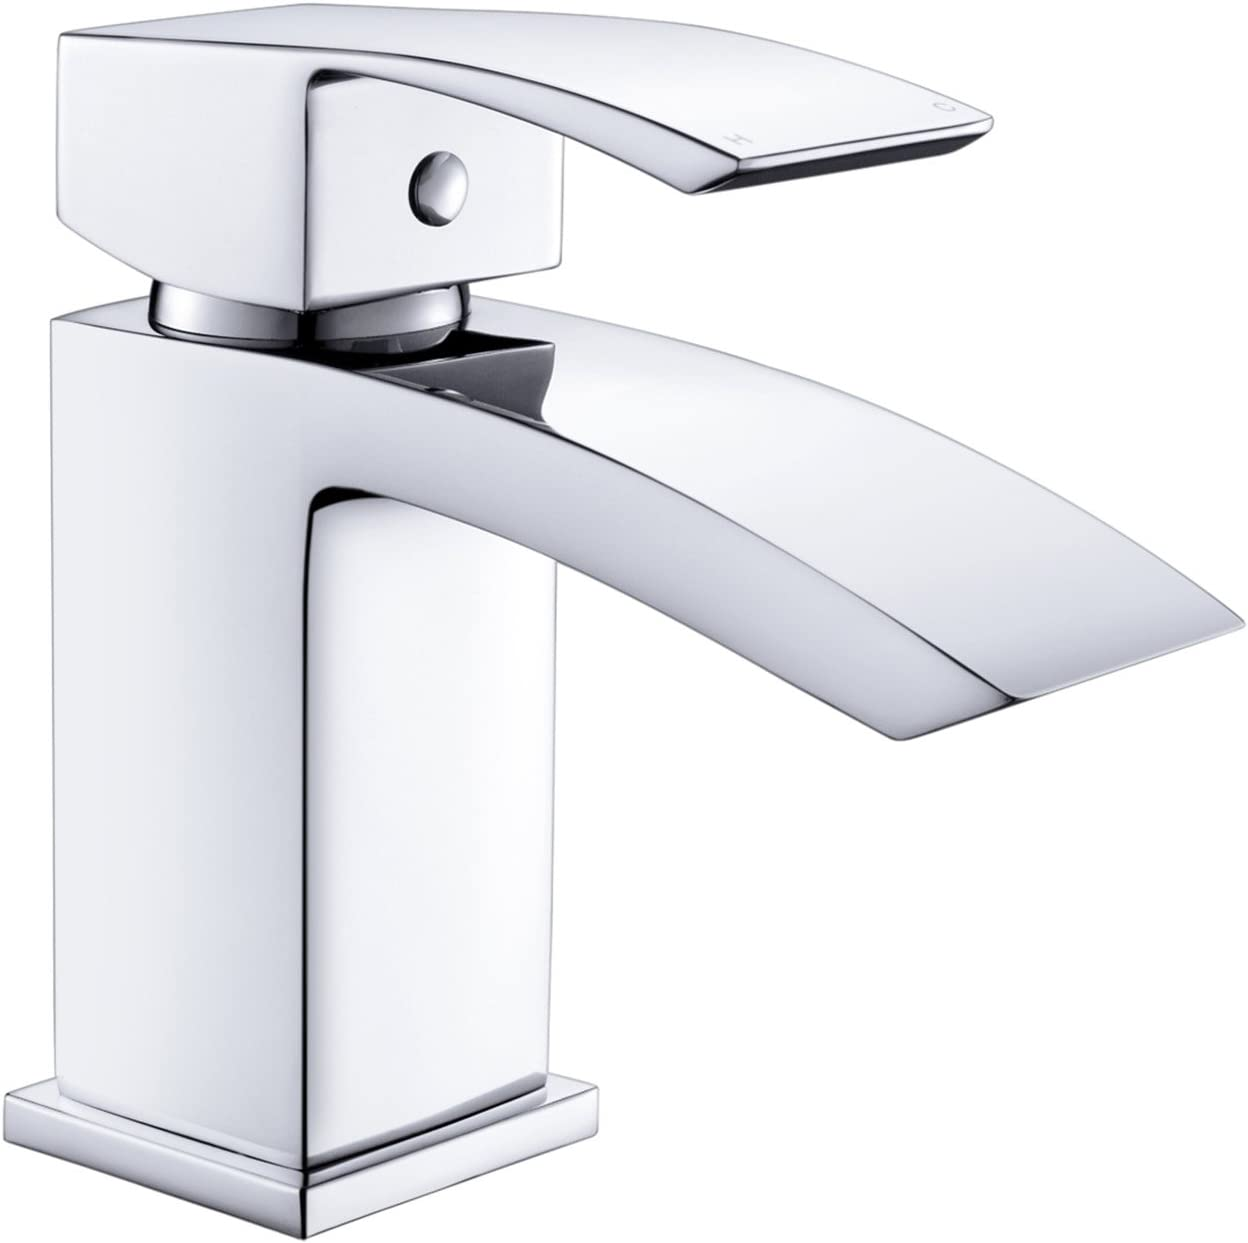 Celala |Bathroom Brass Chrome Basin Sink Mixer Taps with 10 Years Warranty